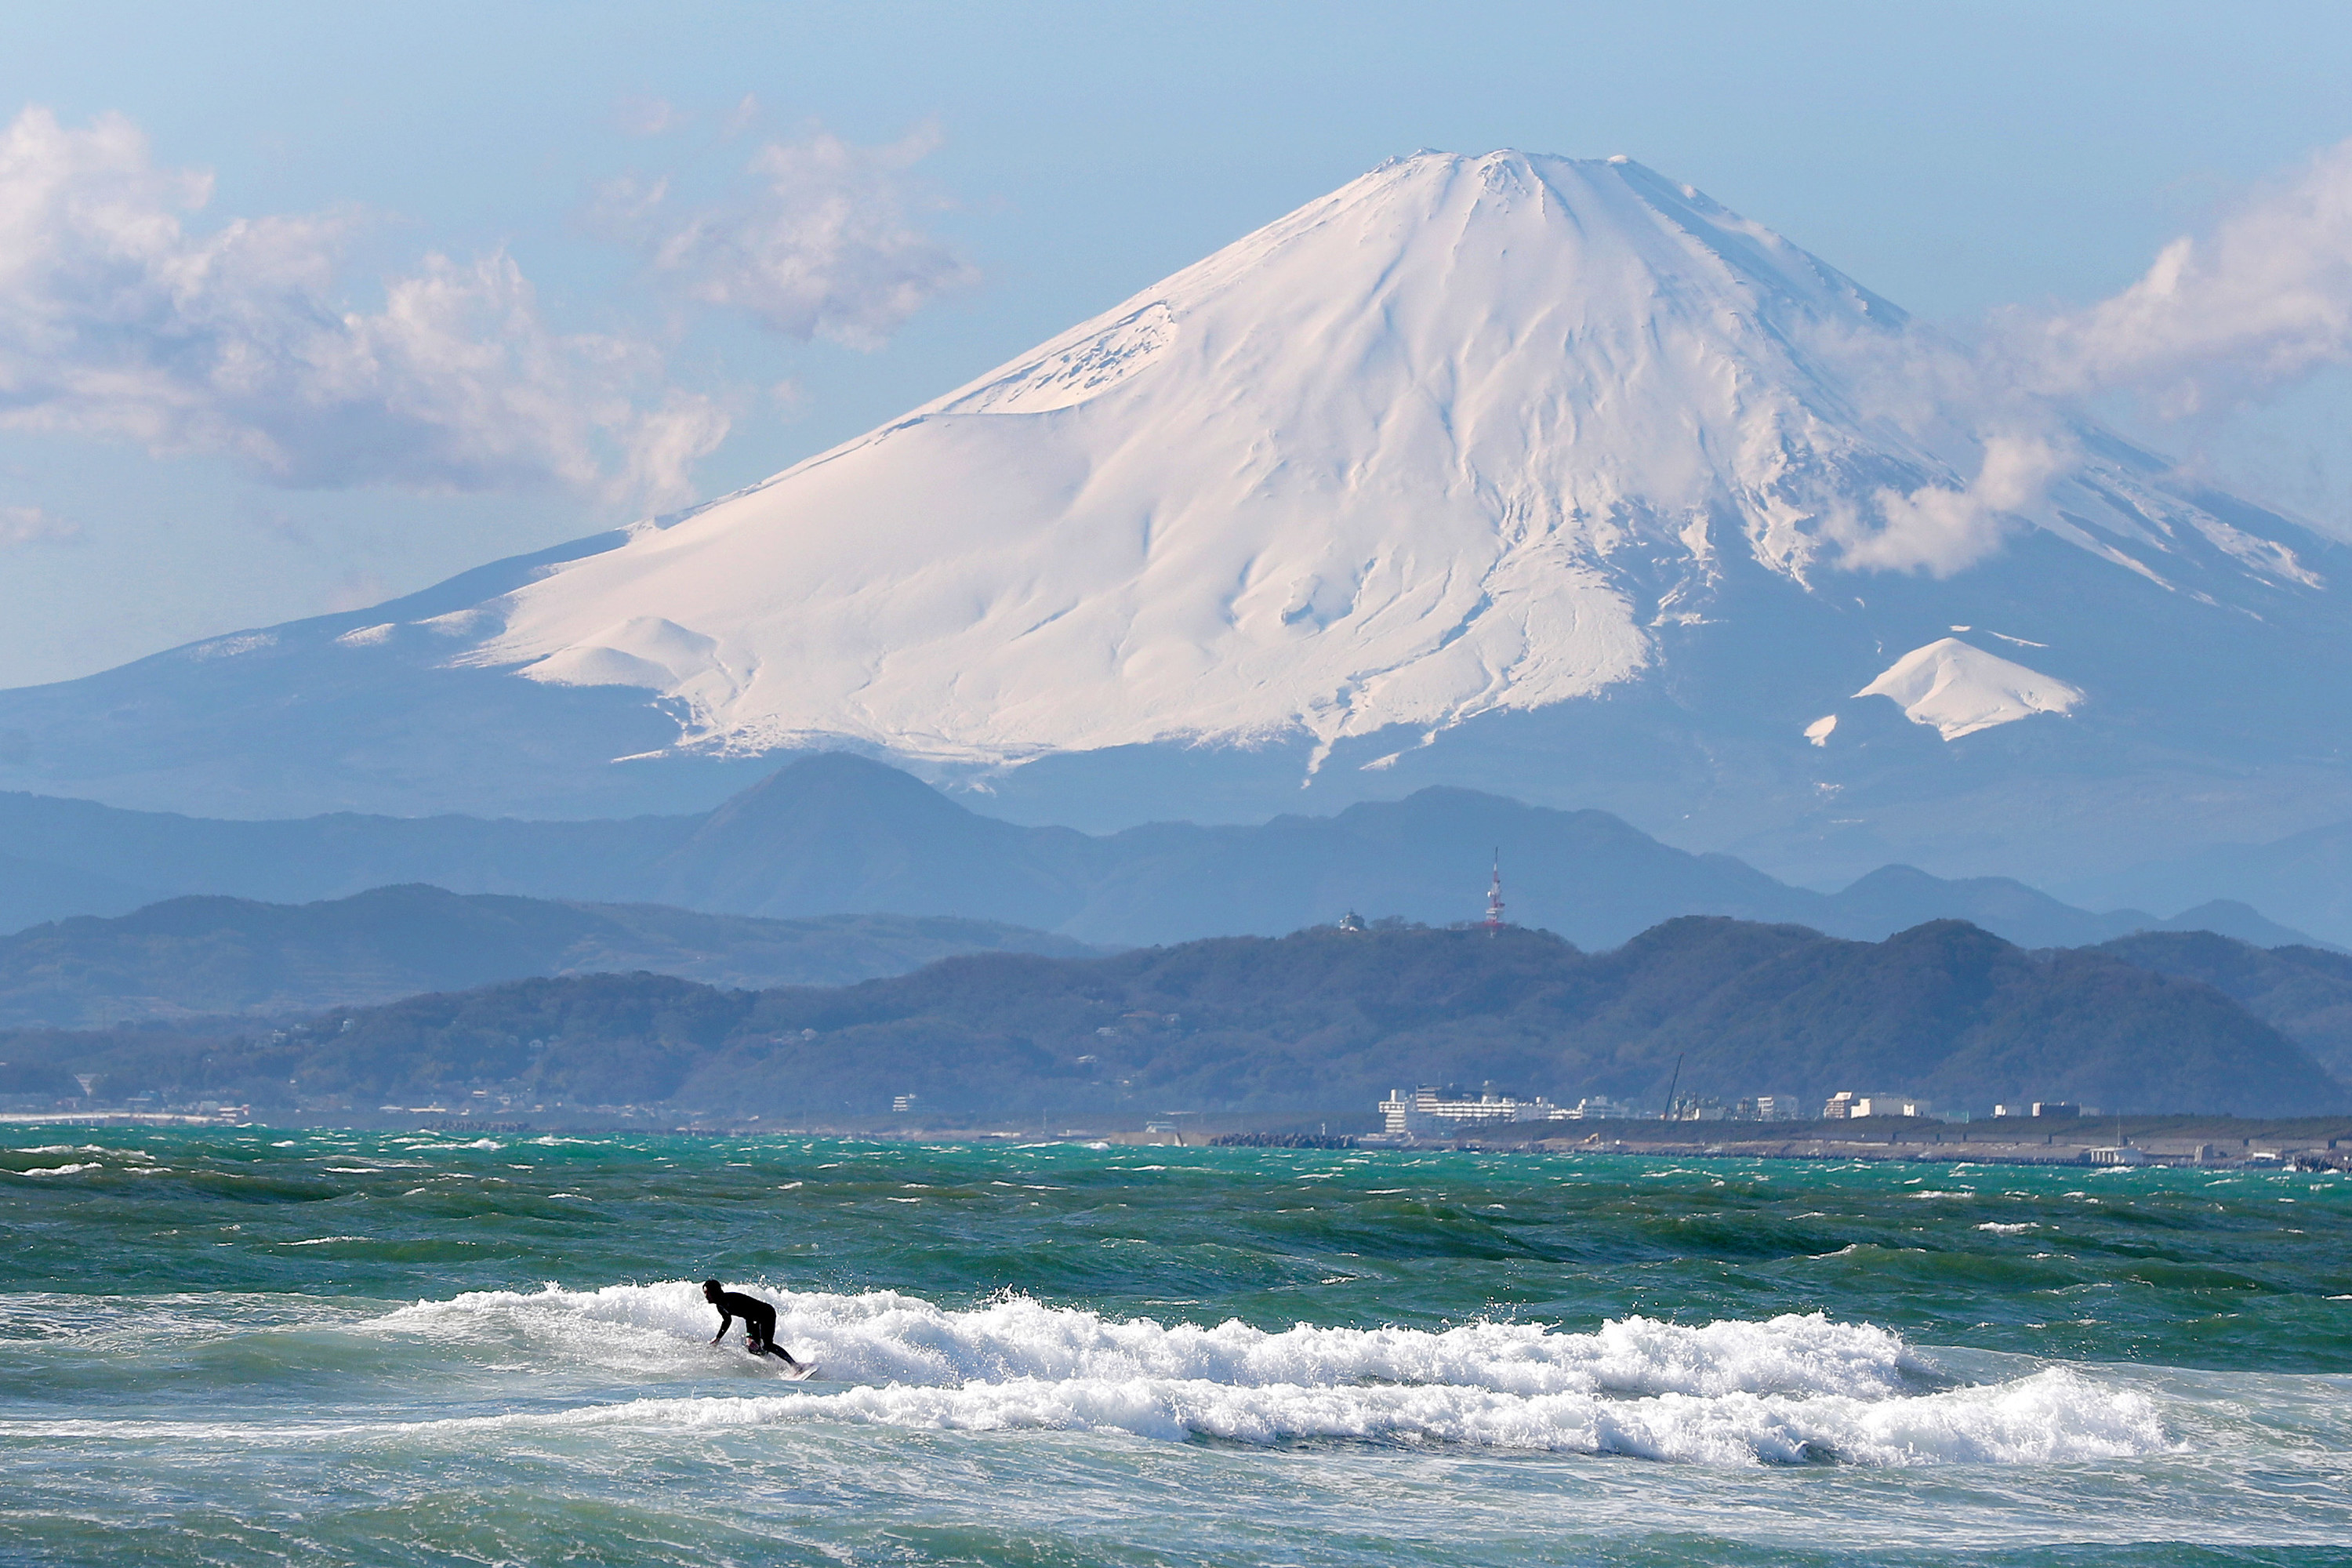 Surfer riding waves and a mountain in the backdrop